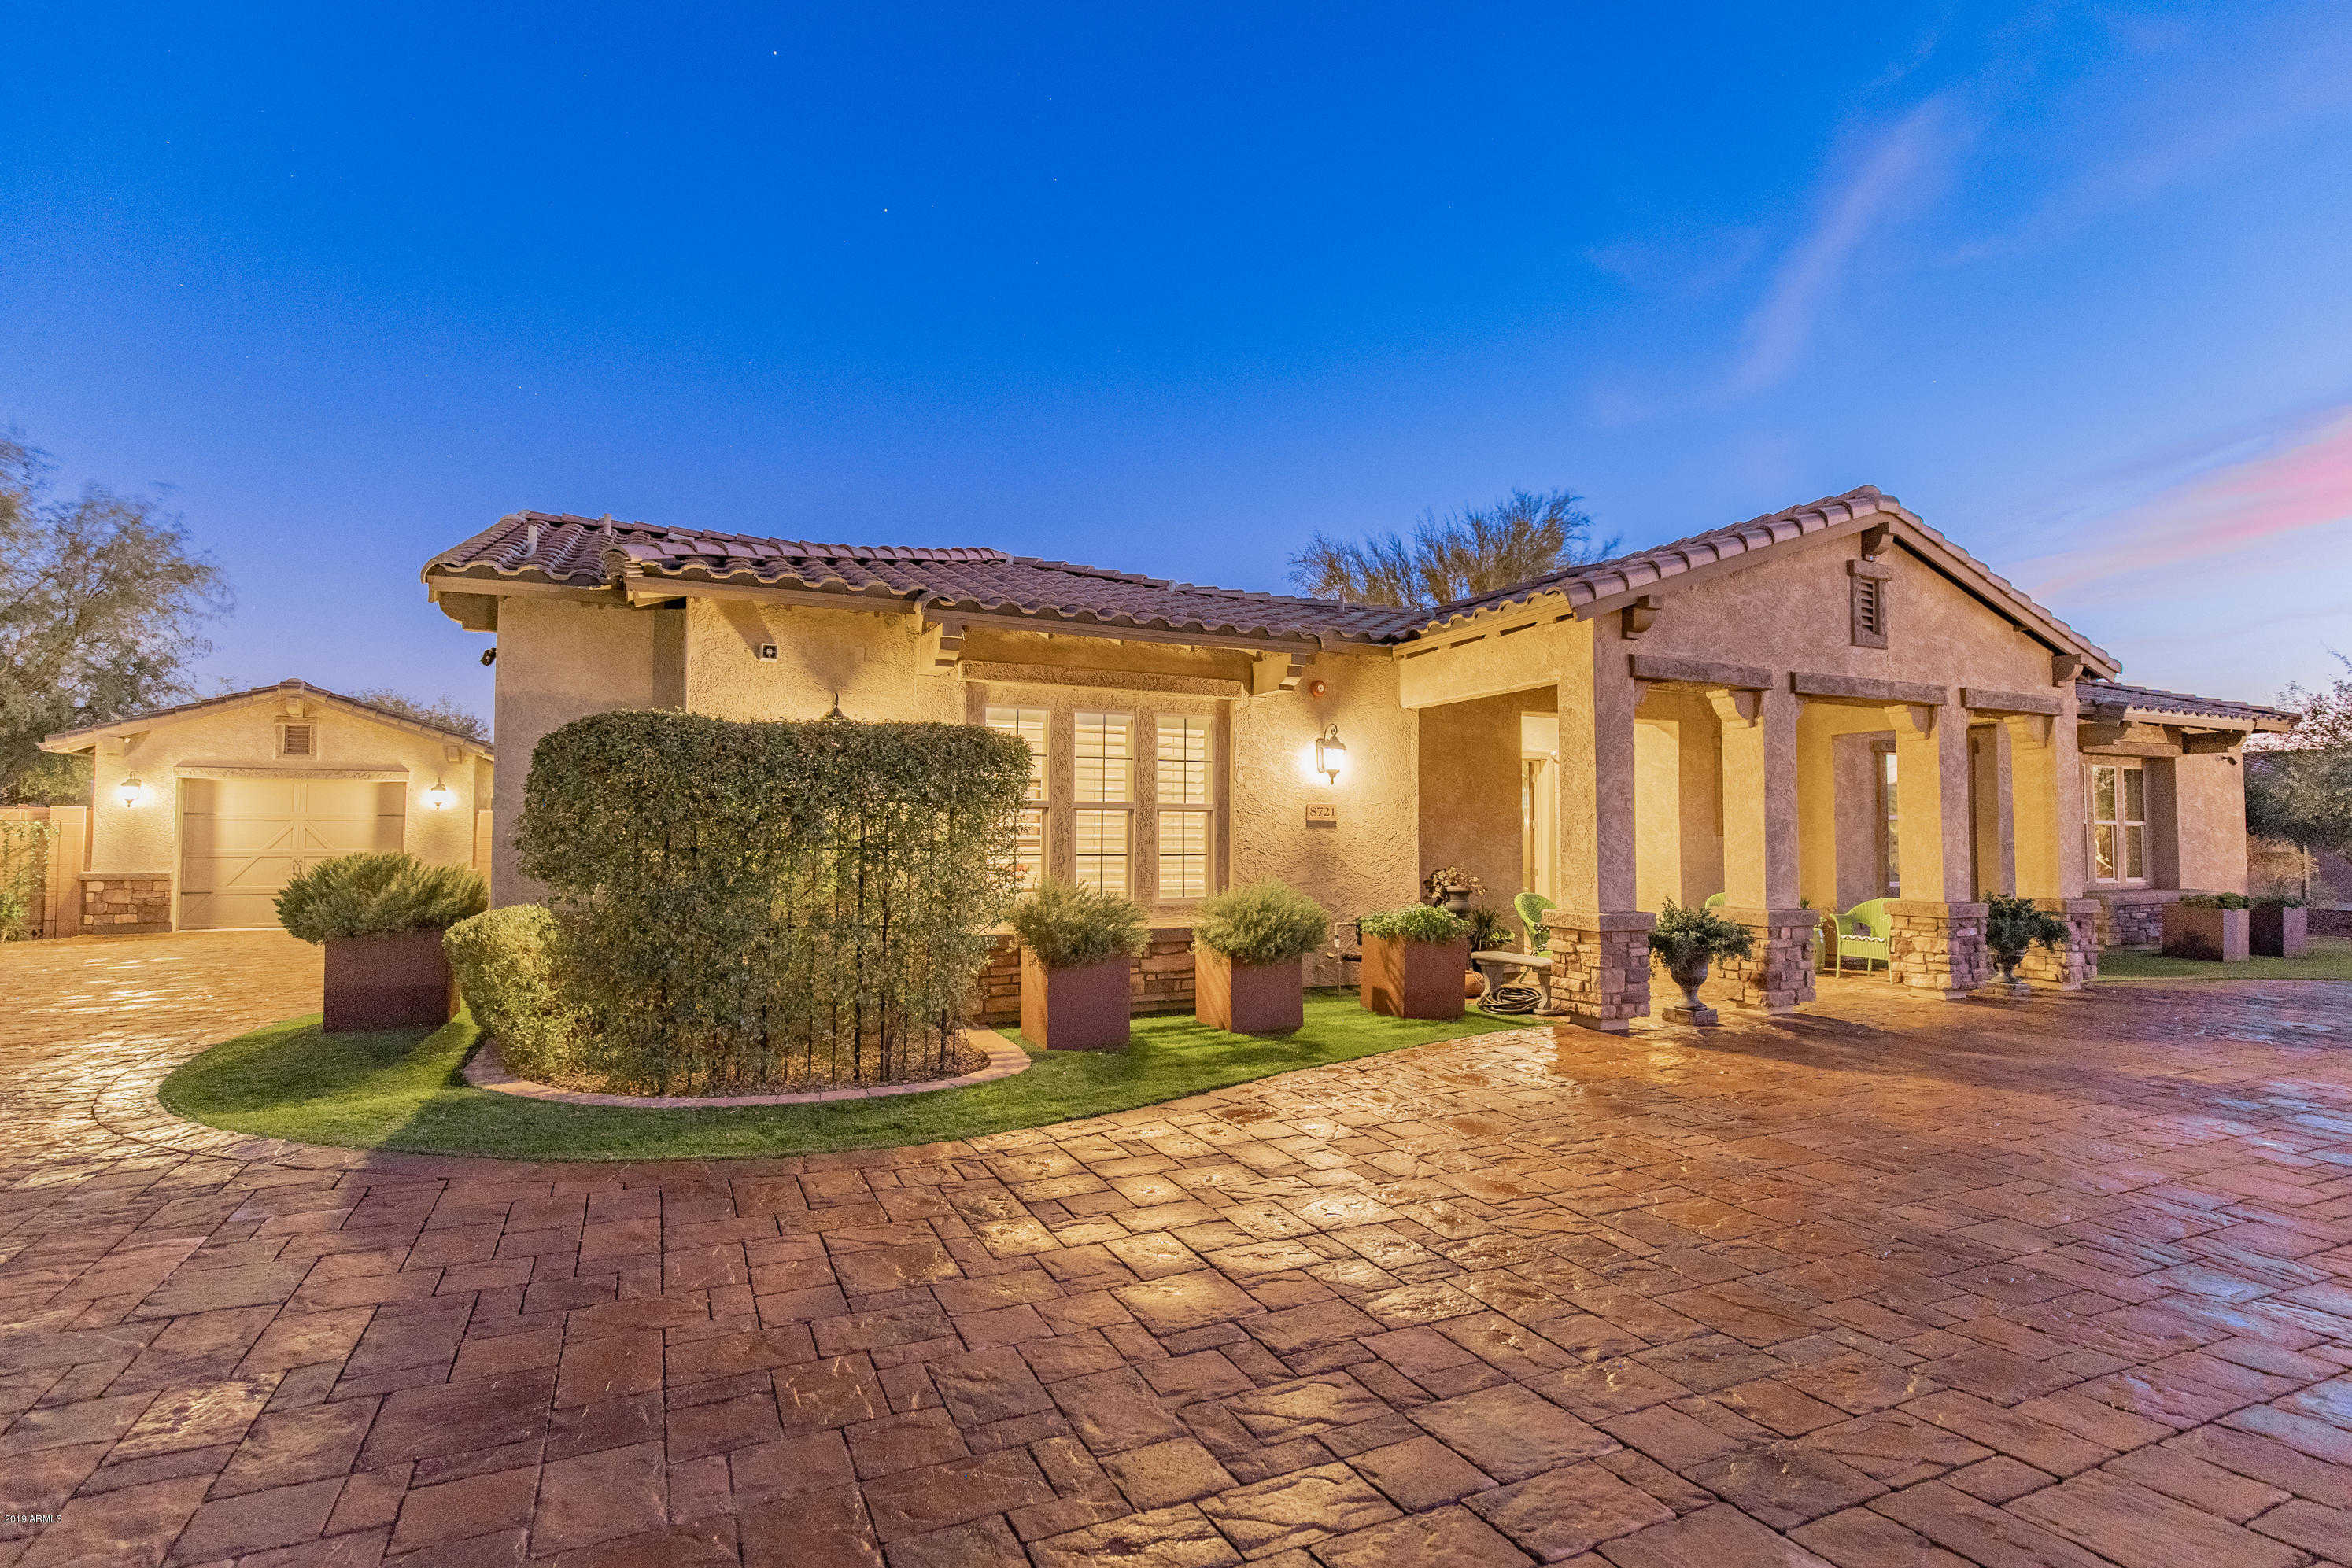 $1,100,000 - 5Br/5Ba - Home for Sale in Ventana Picachos, Peoria